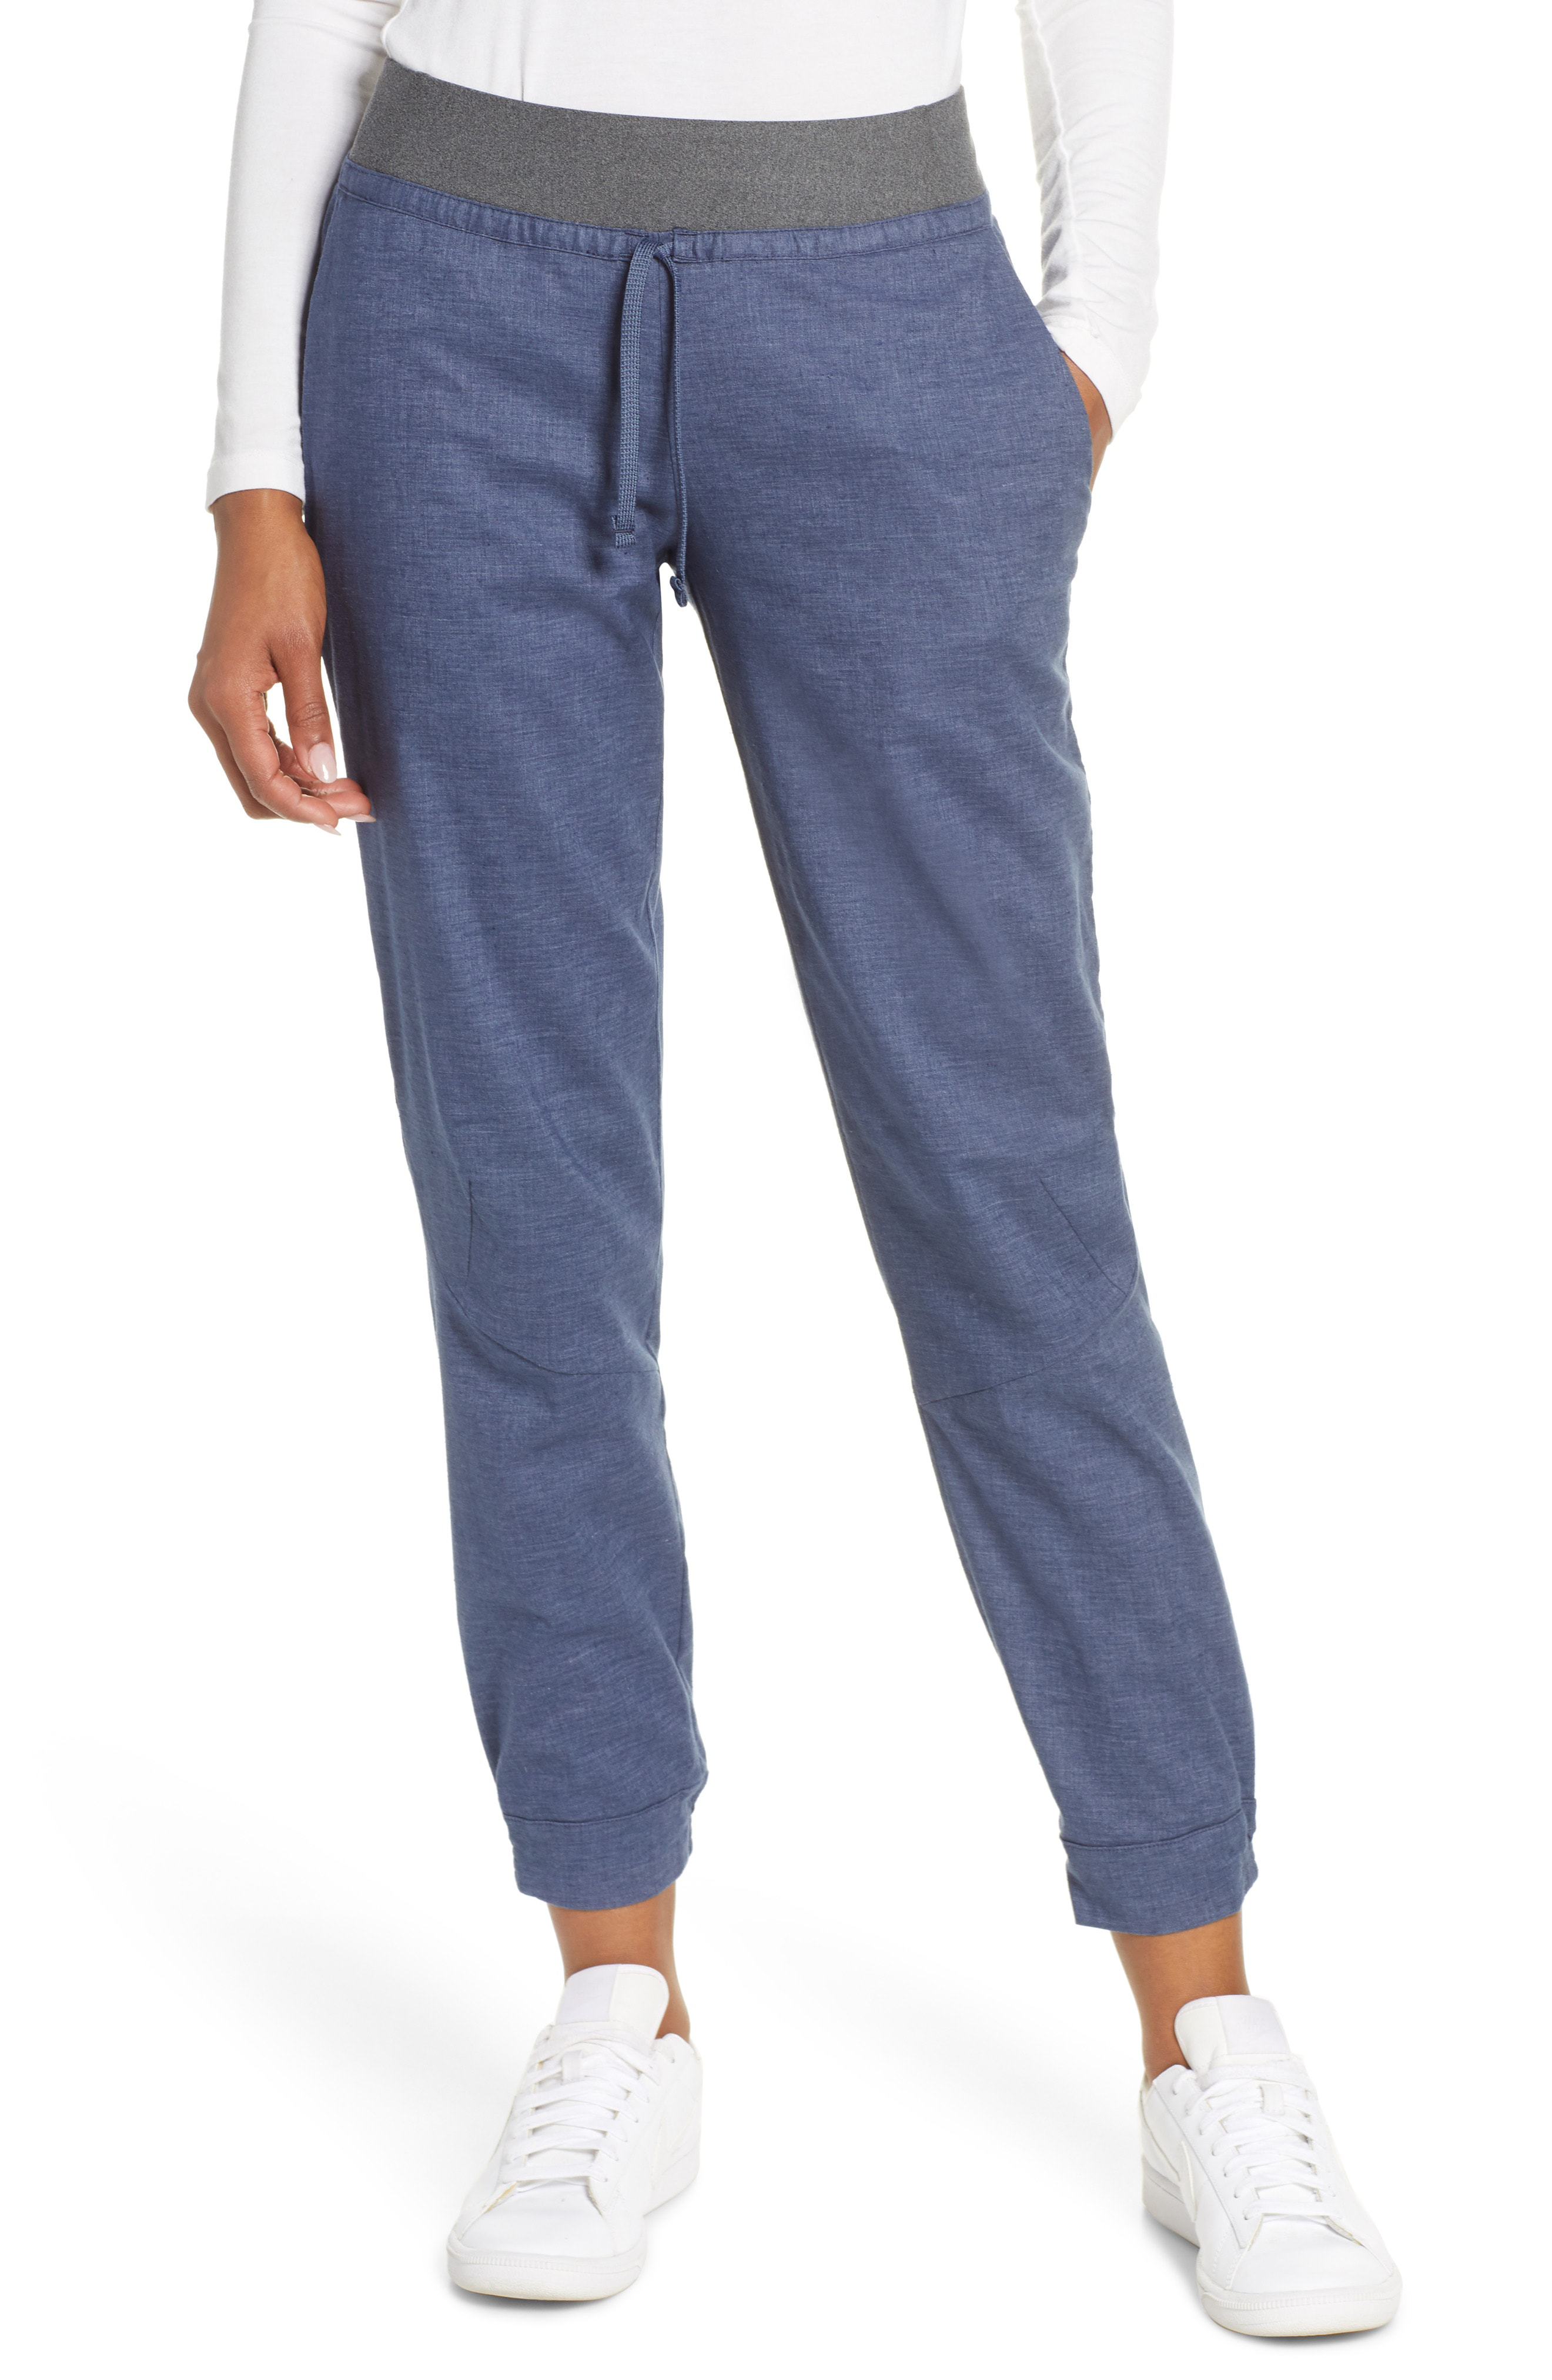 da6d0df270e Style Name  Patagonia Women s Hampi Rock Pants. Style Number  5579712.  Available in stores.